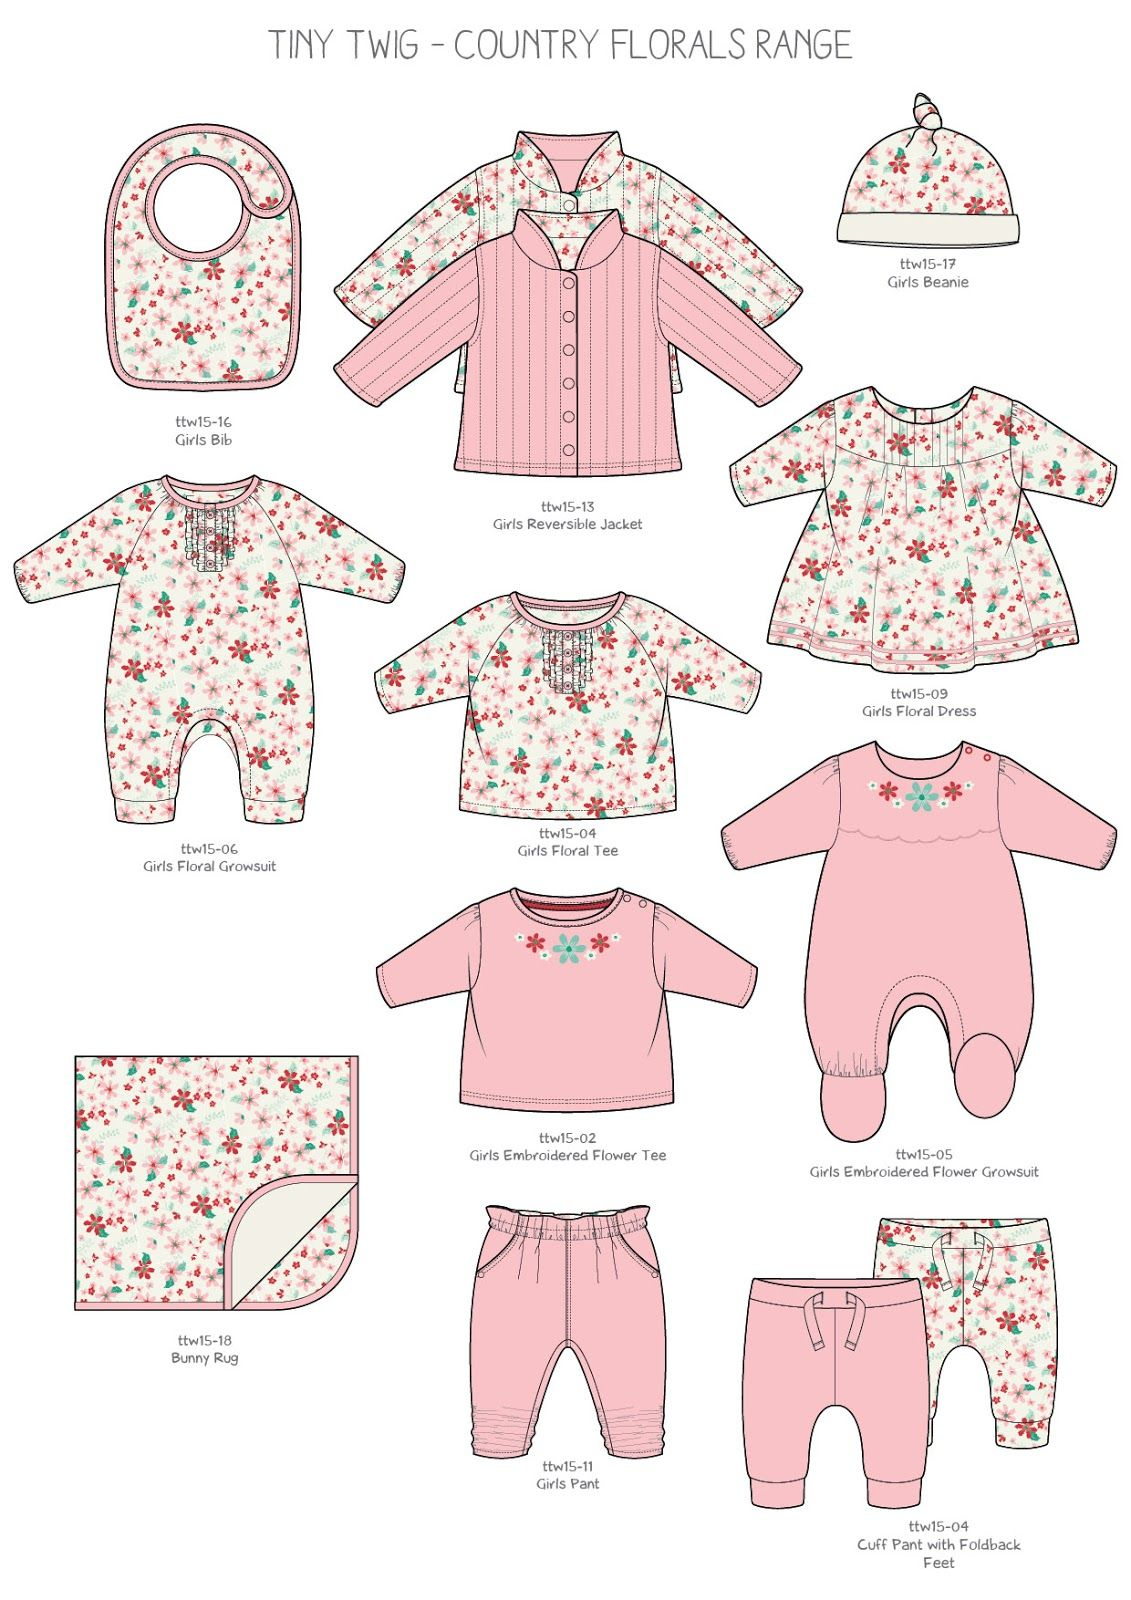 Last year I helped design some ranges for the Australian babywear ...